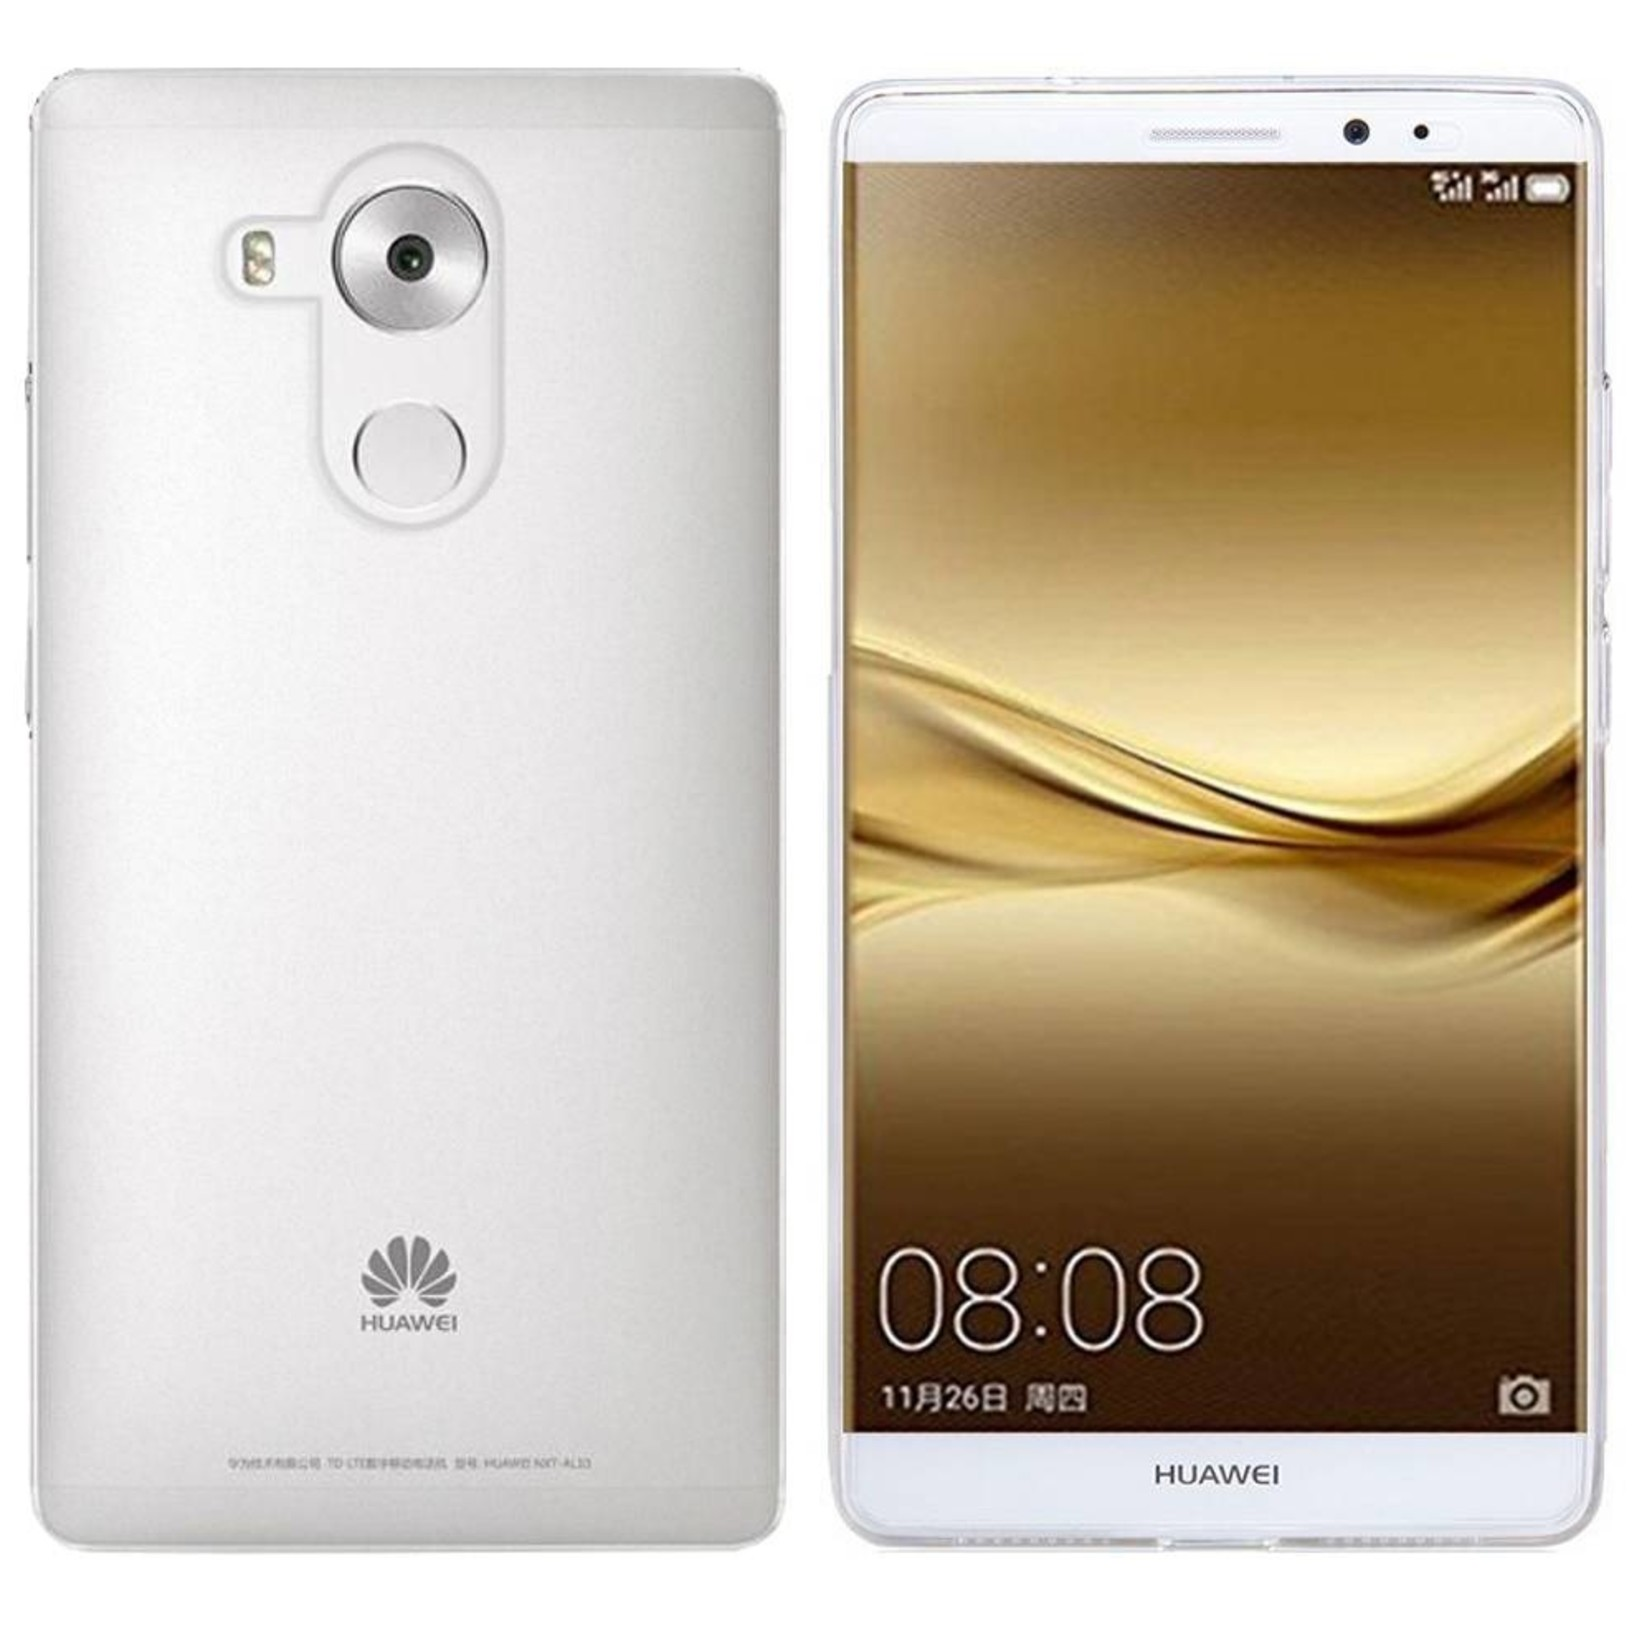 Colorfone Hoesje CoolSkin3T voor Huawei Mate 8 Tr. Wit